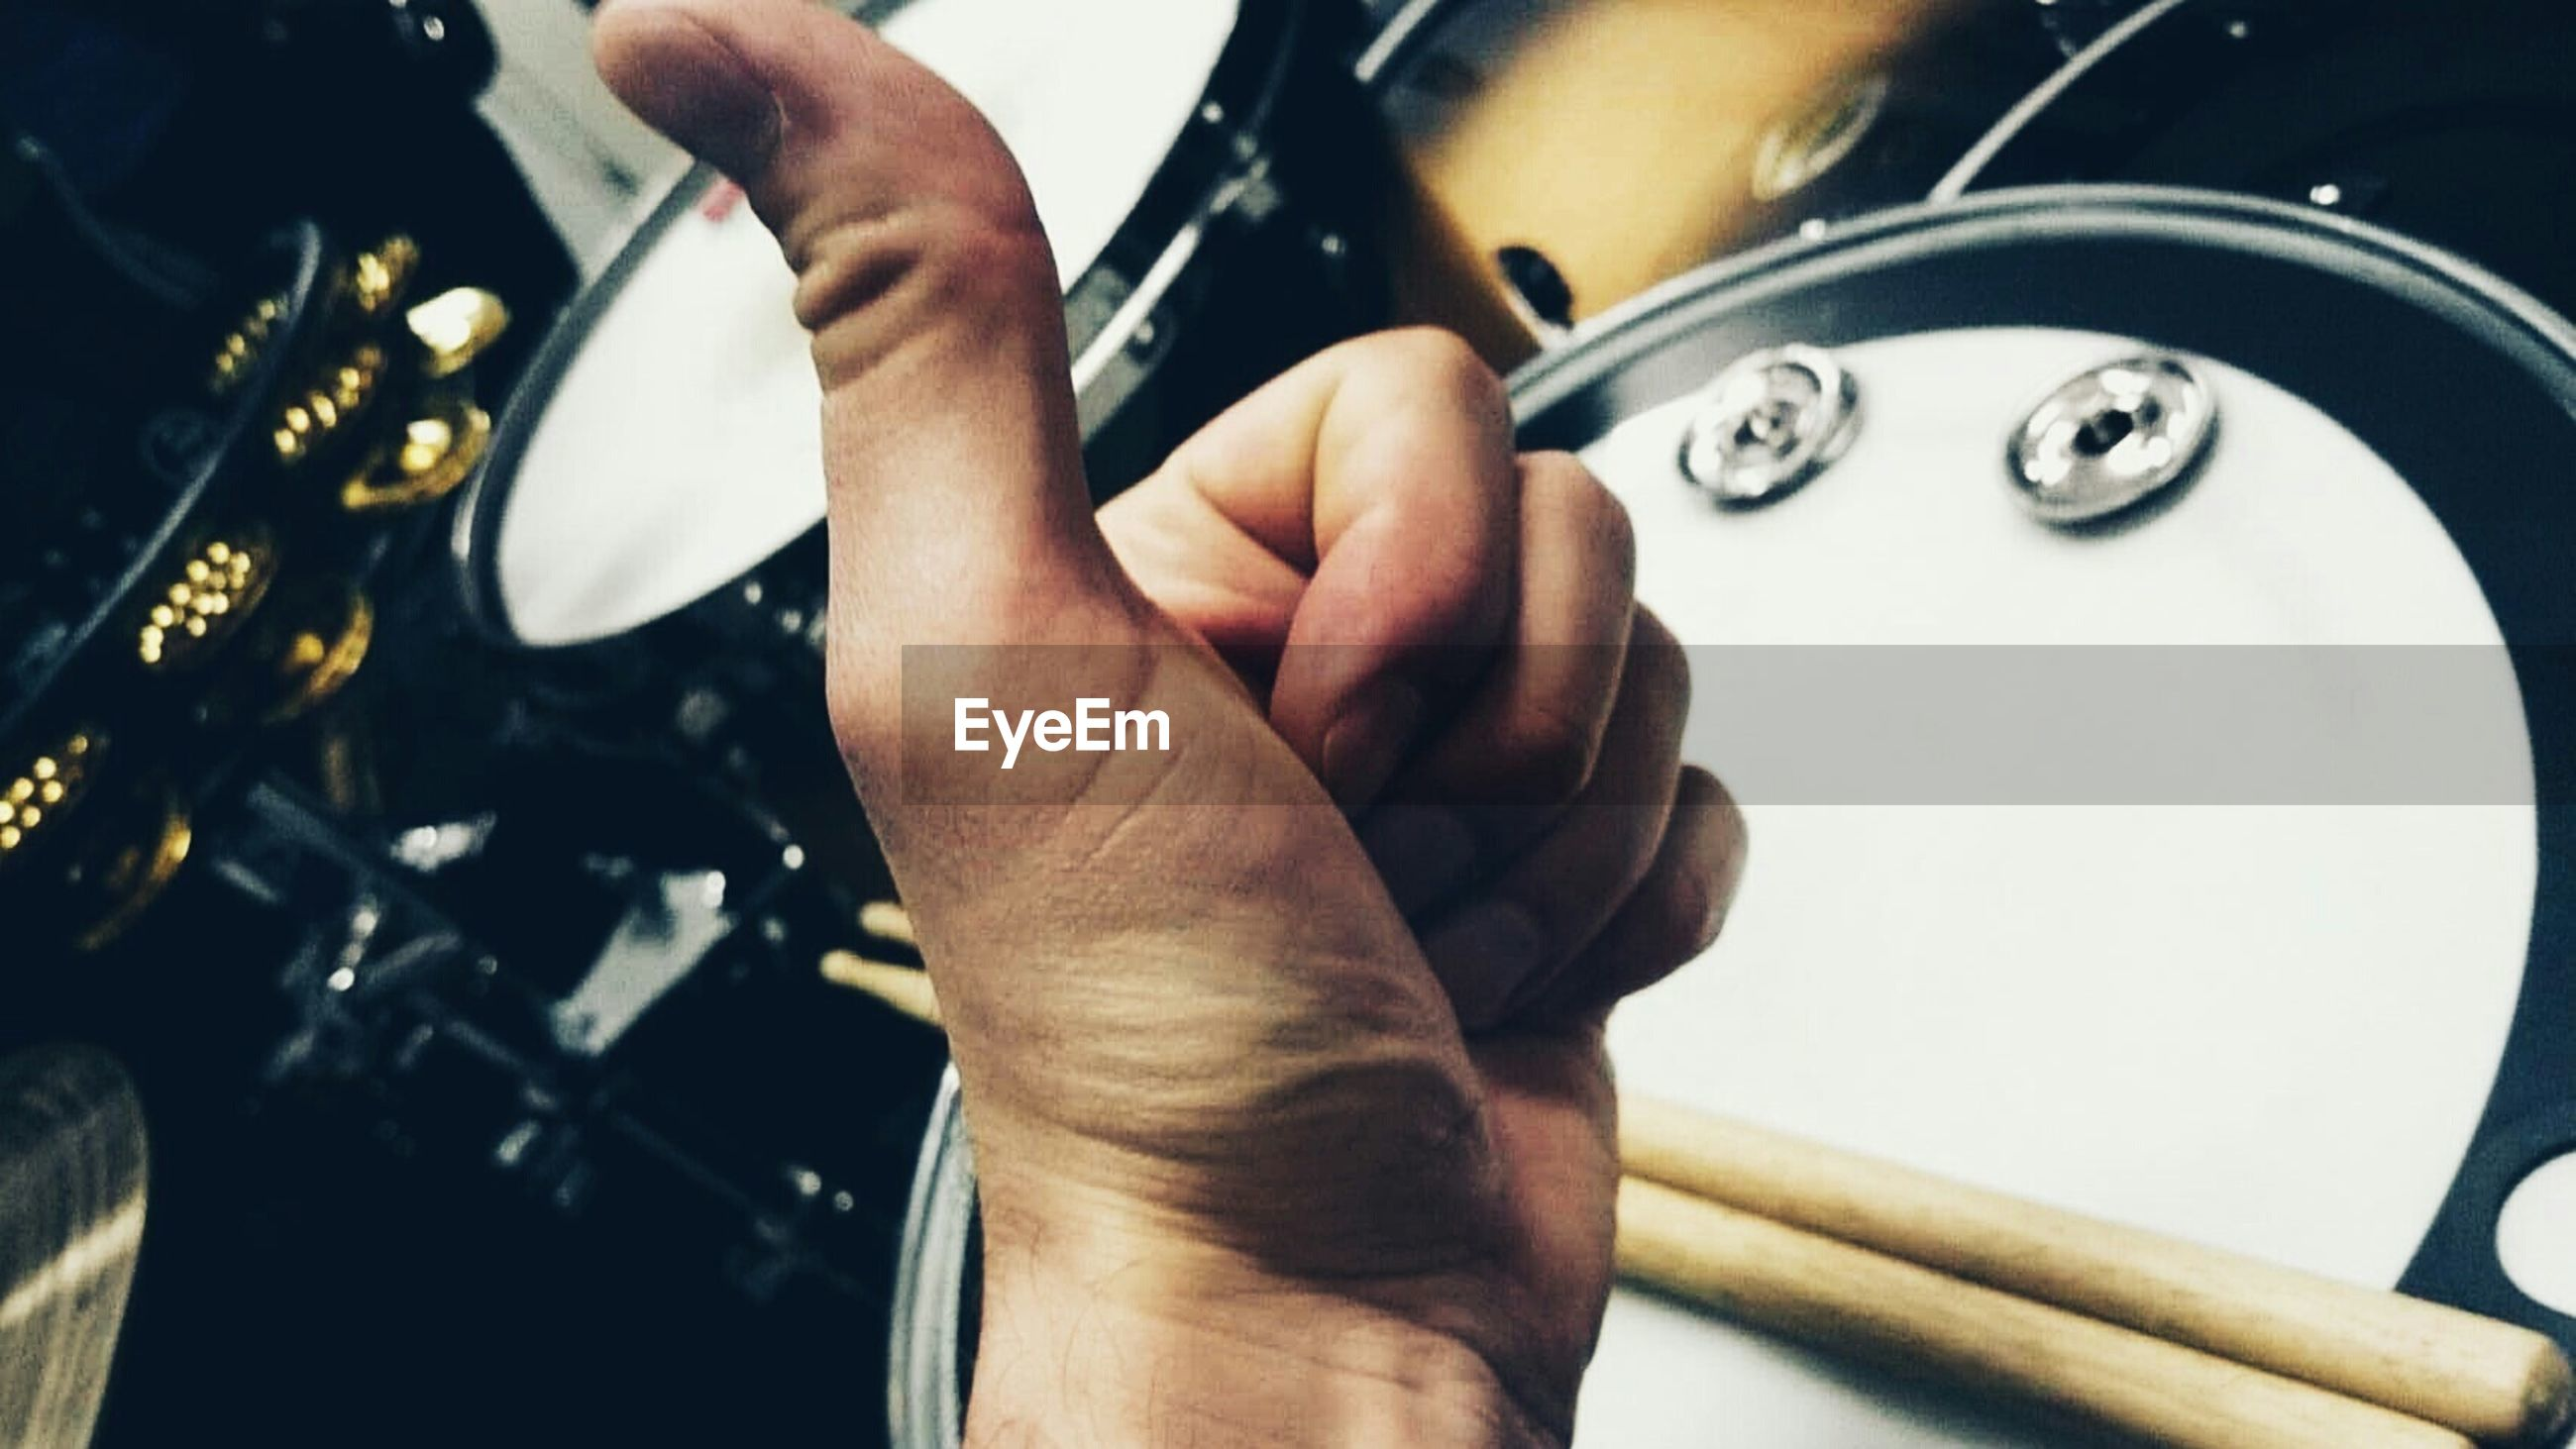 Close-up of drummer showing thumbs up sign